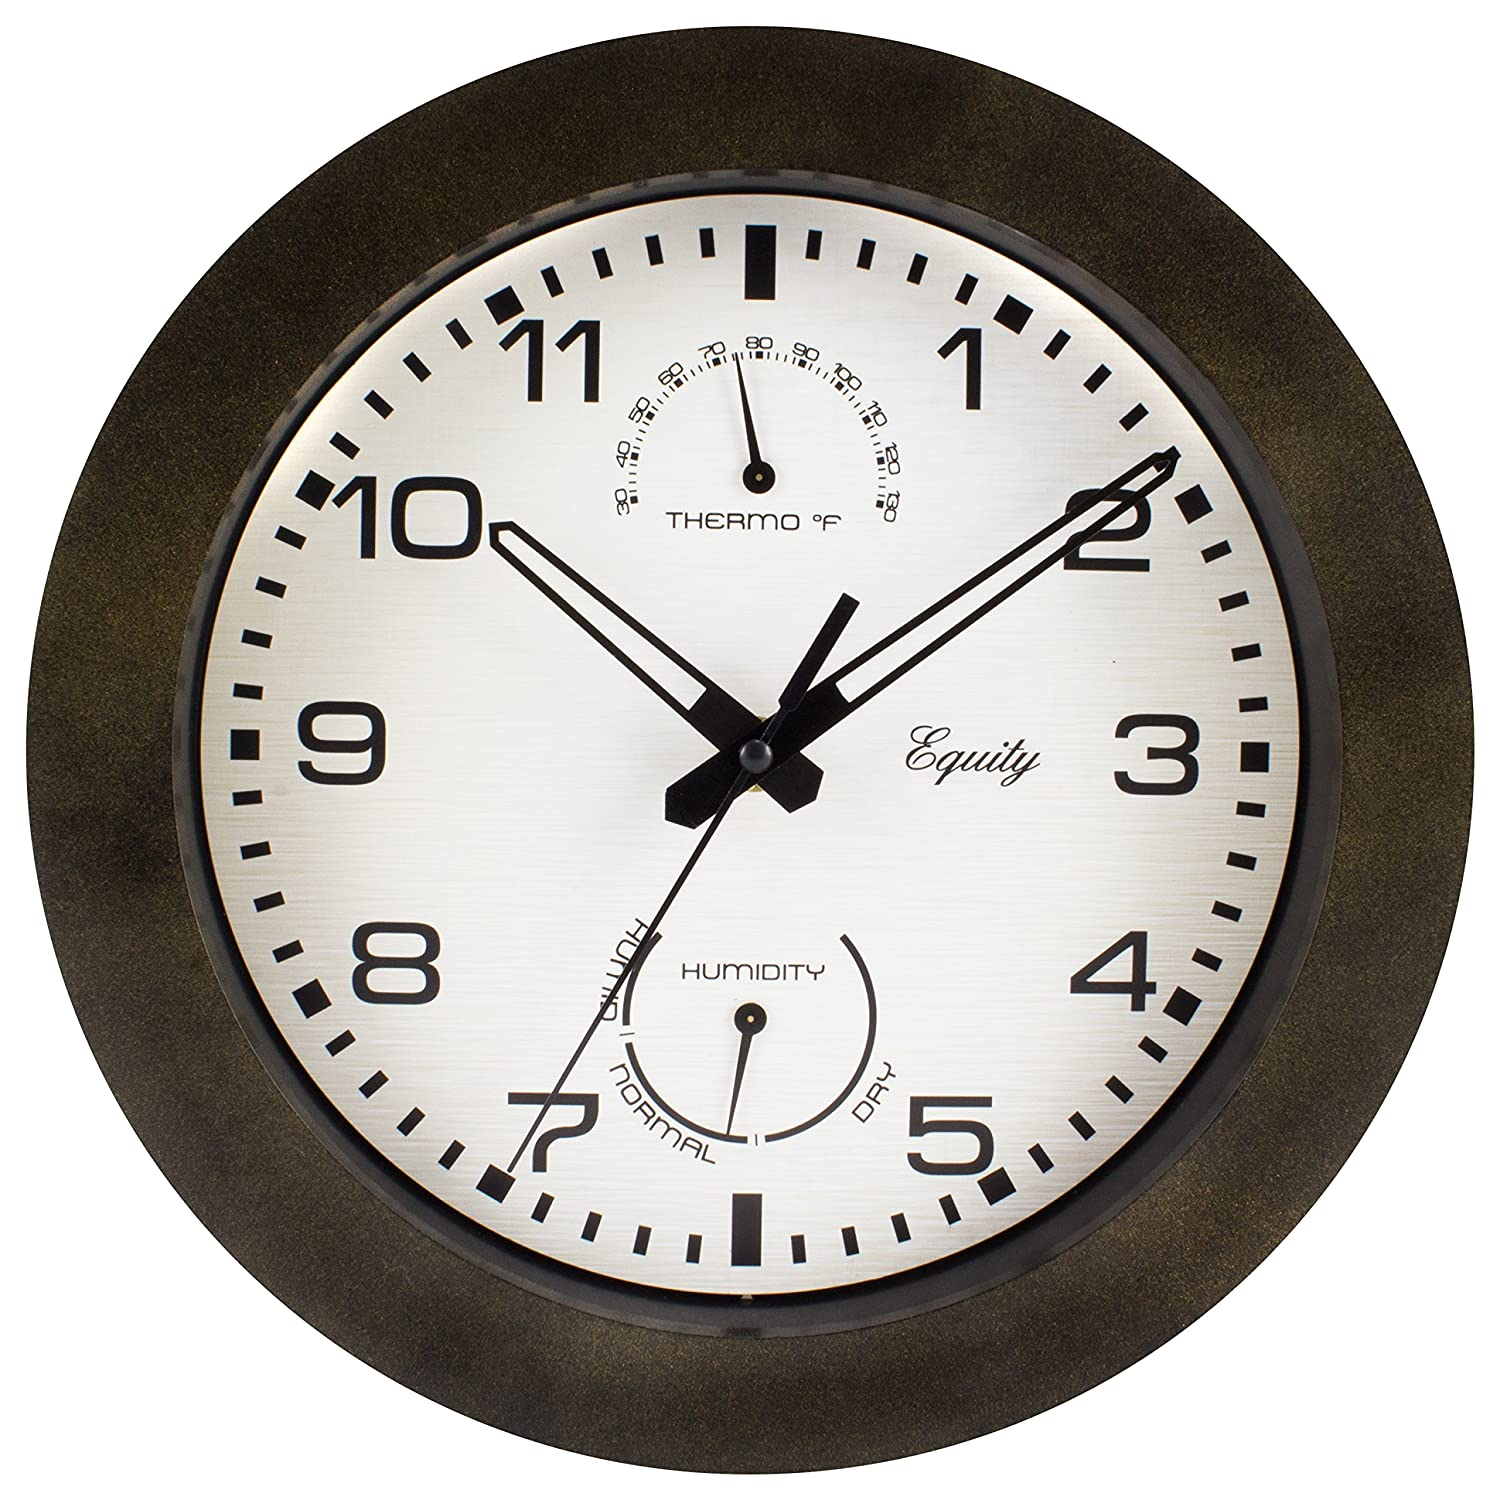 Amazon equity by la crosse 29005 outdoor thermometer and amazon equity by la crosse 29005 outdoor thermometer and humidity wall clock 10 brown home kitchen amipublicfo Choice Image